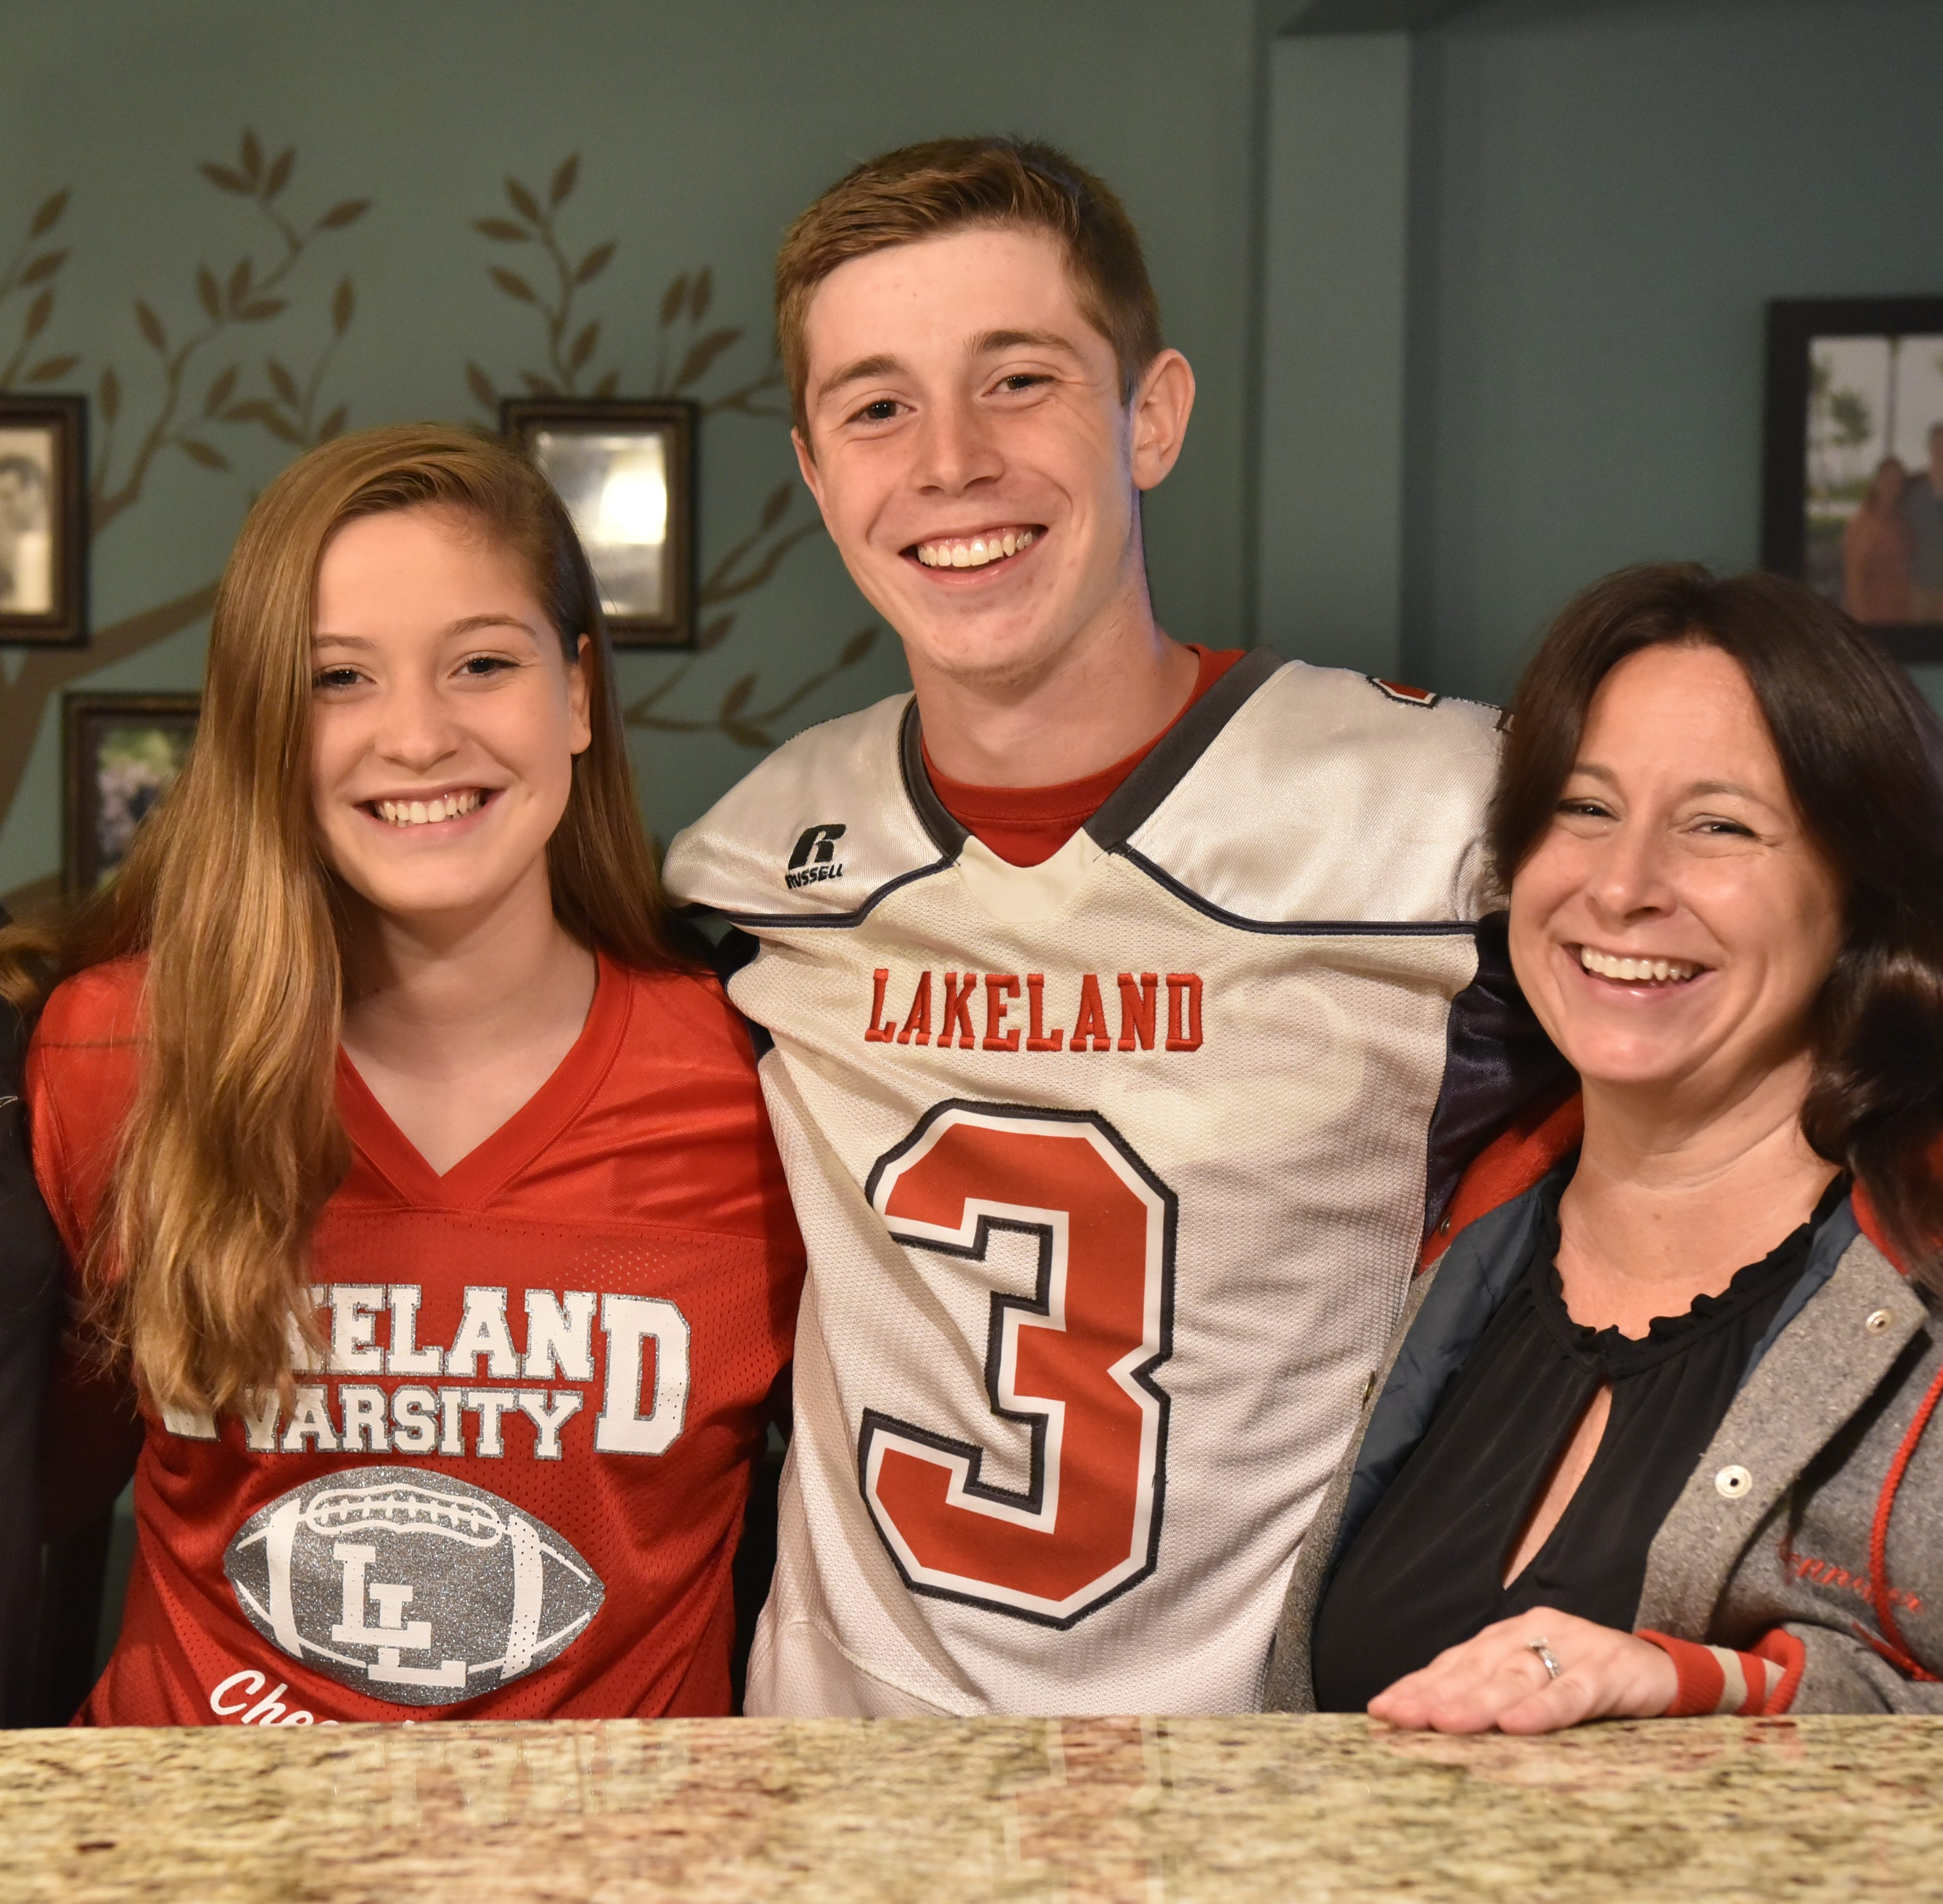 Deep roots make Lakeland/West Milford rivalry glow, especially in Trentacosta house